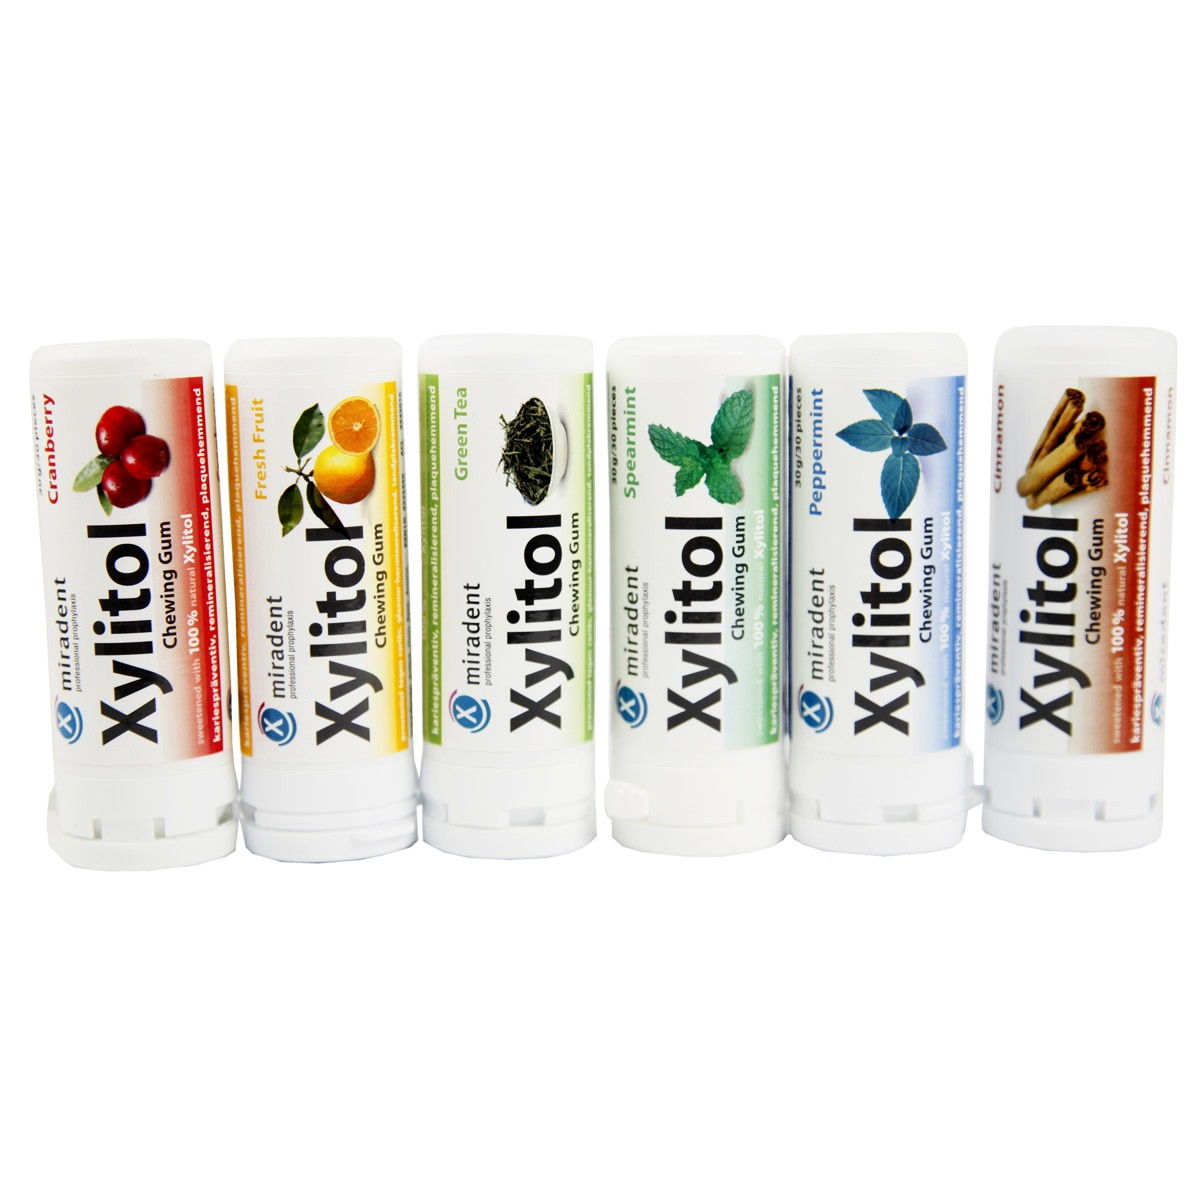 Miradent Xylitol Chewing Gum 30g/30pieces